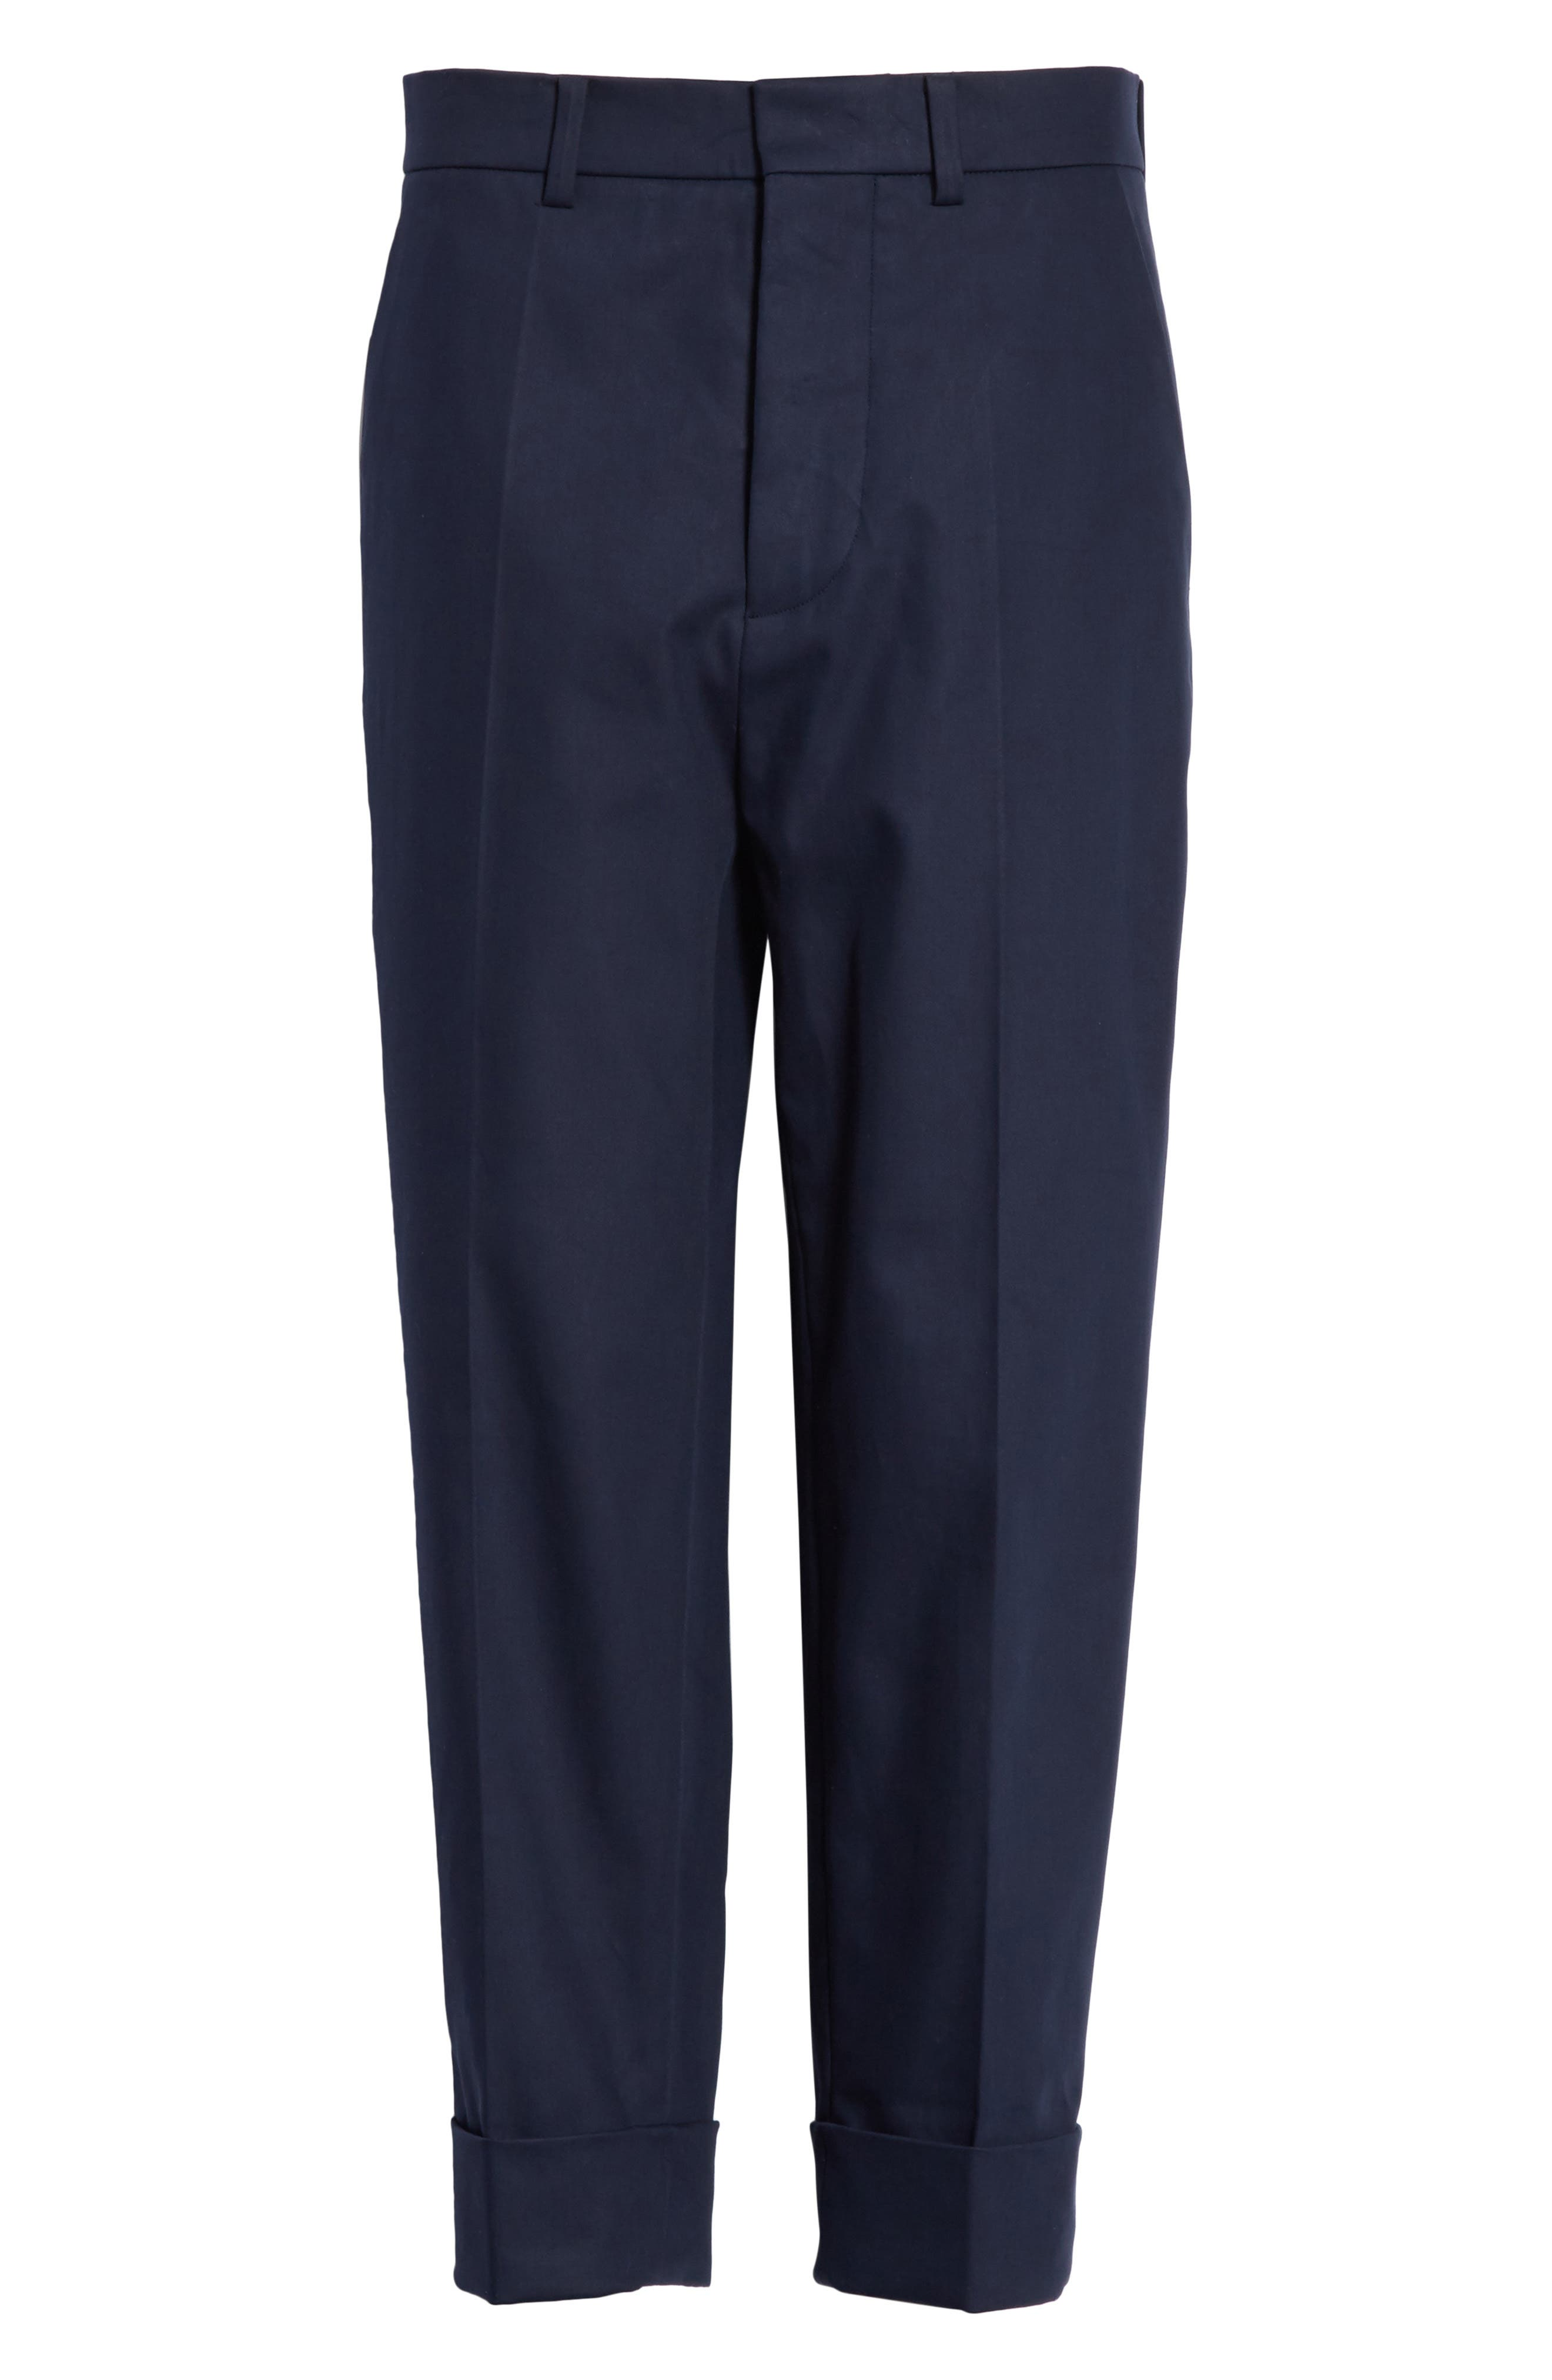 Cuffed Crop Pants,                             Alternate thumbnail 6, color,                             Navy Blue